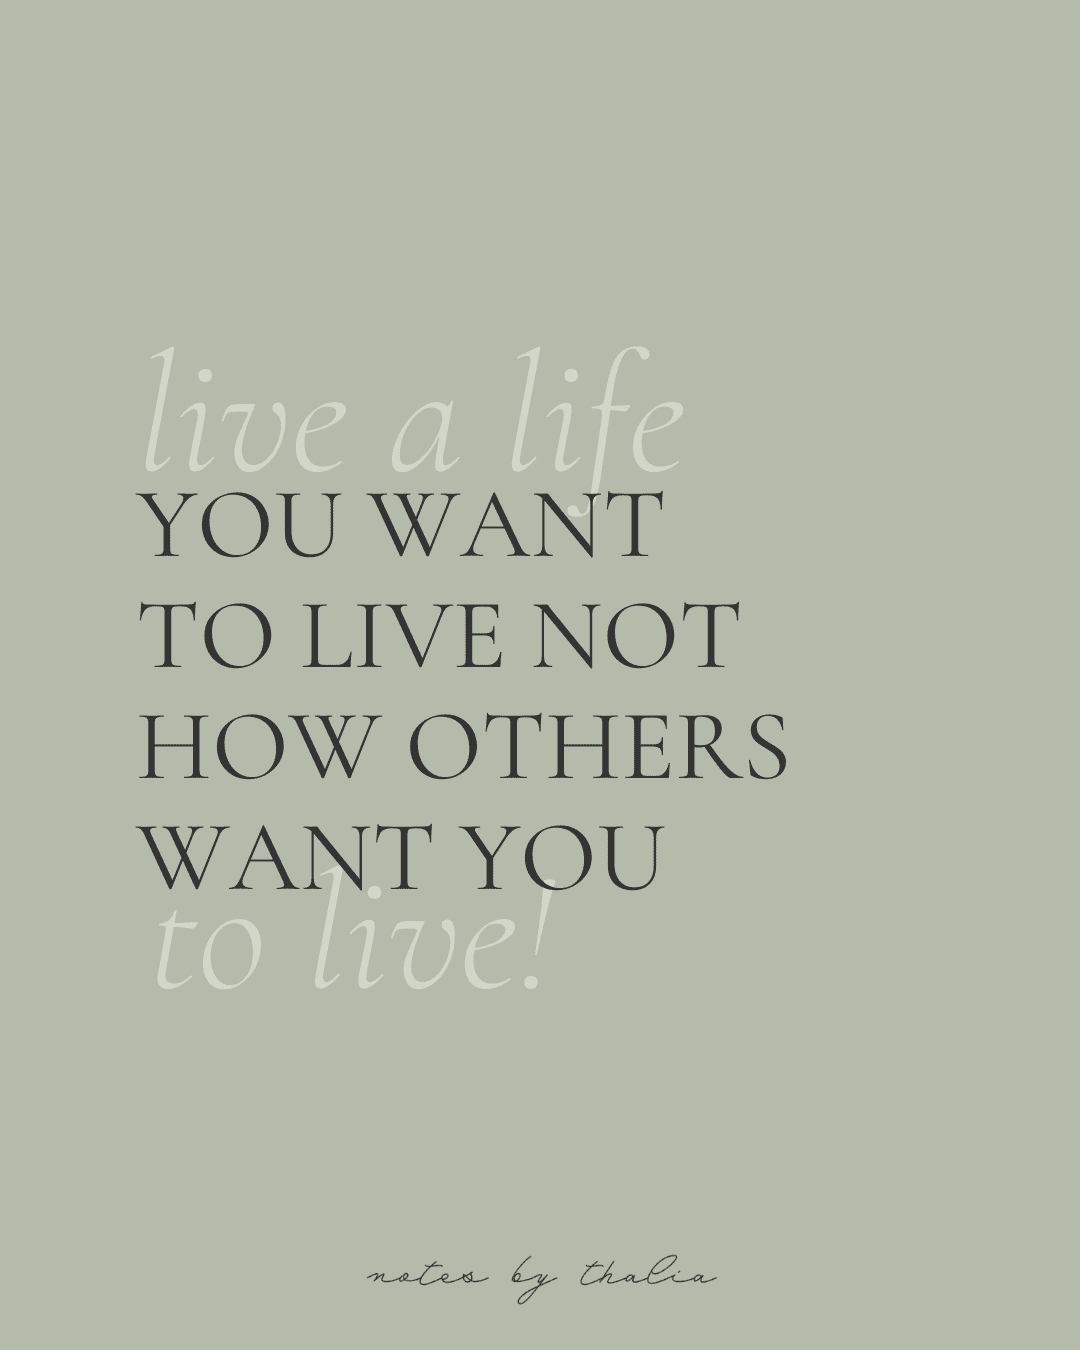 Life lesson number 11. Live a life you want to live not how others want you to live. Quote by notes by thalia